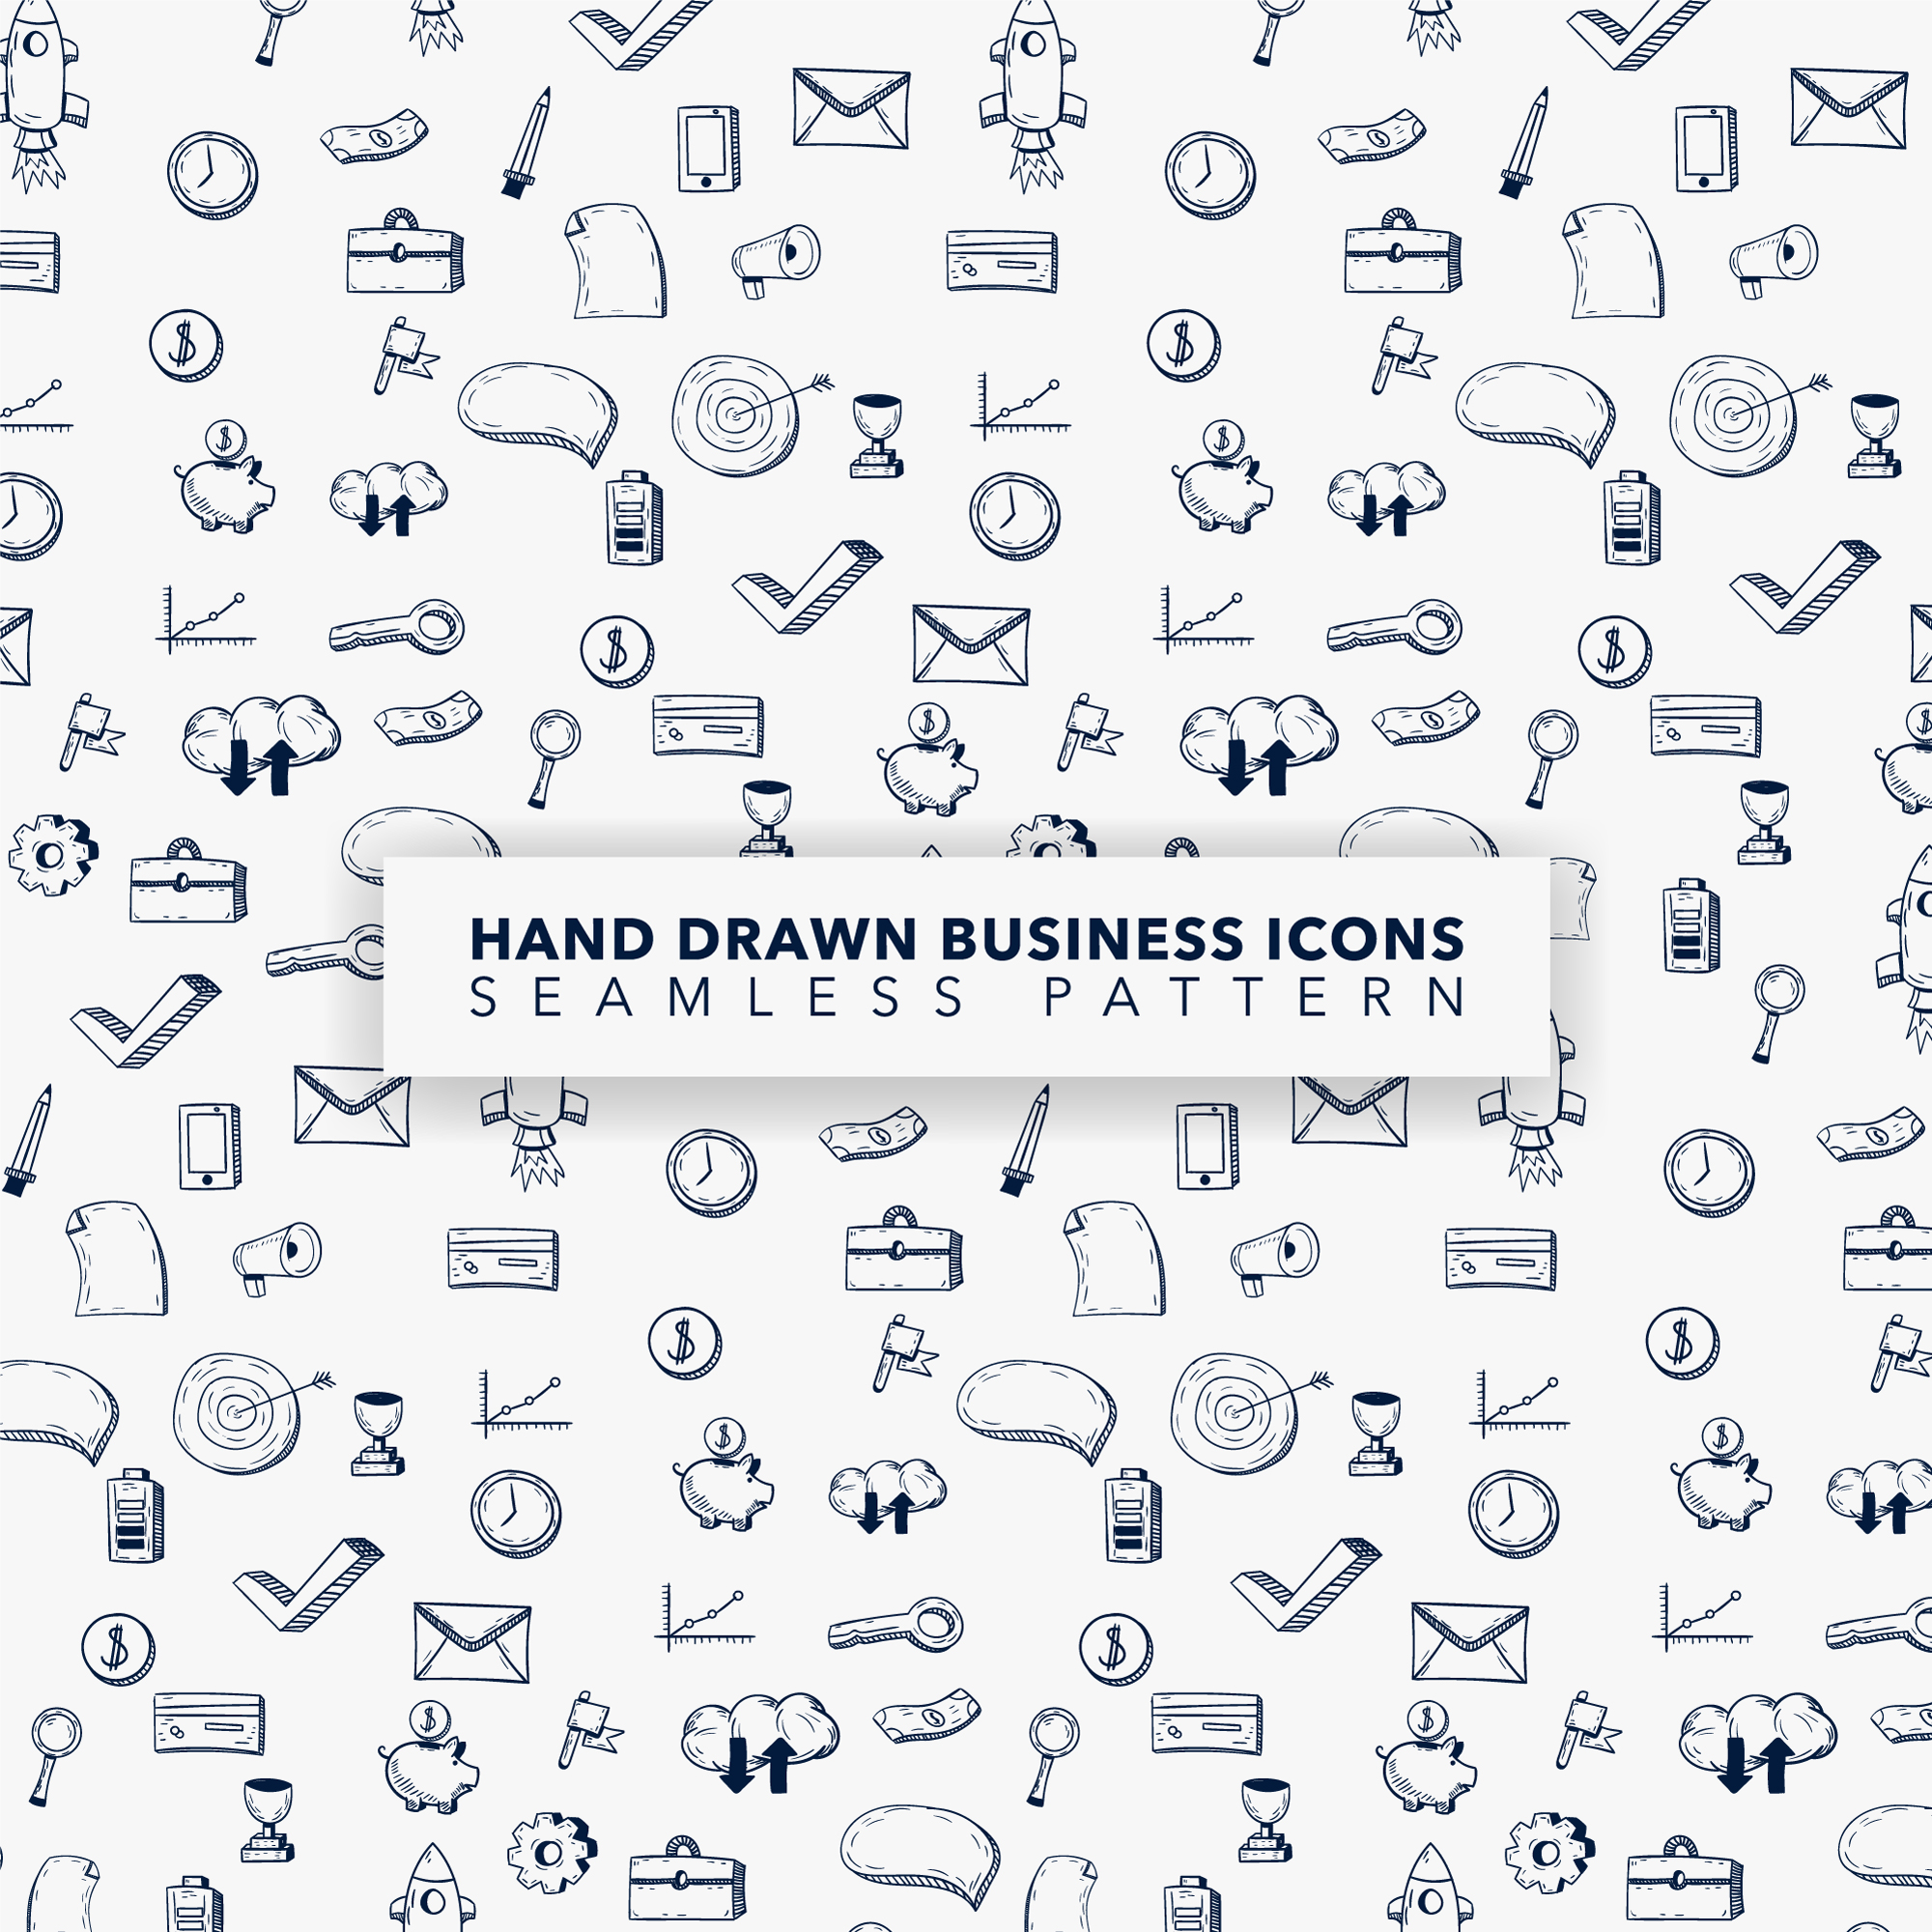 Hand drawn business icon pattern background